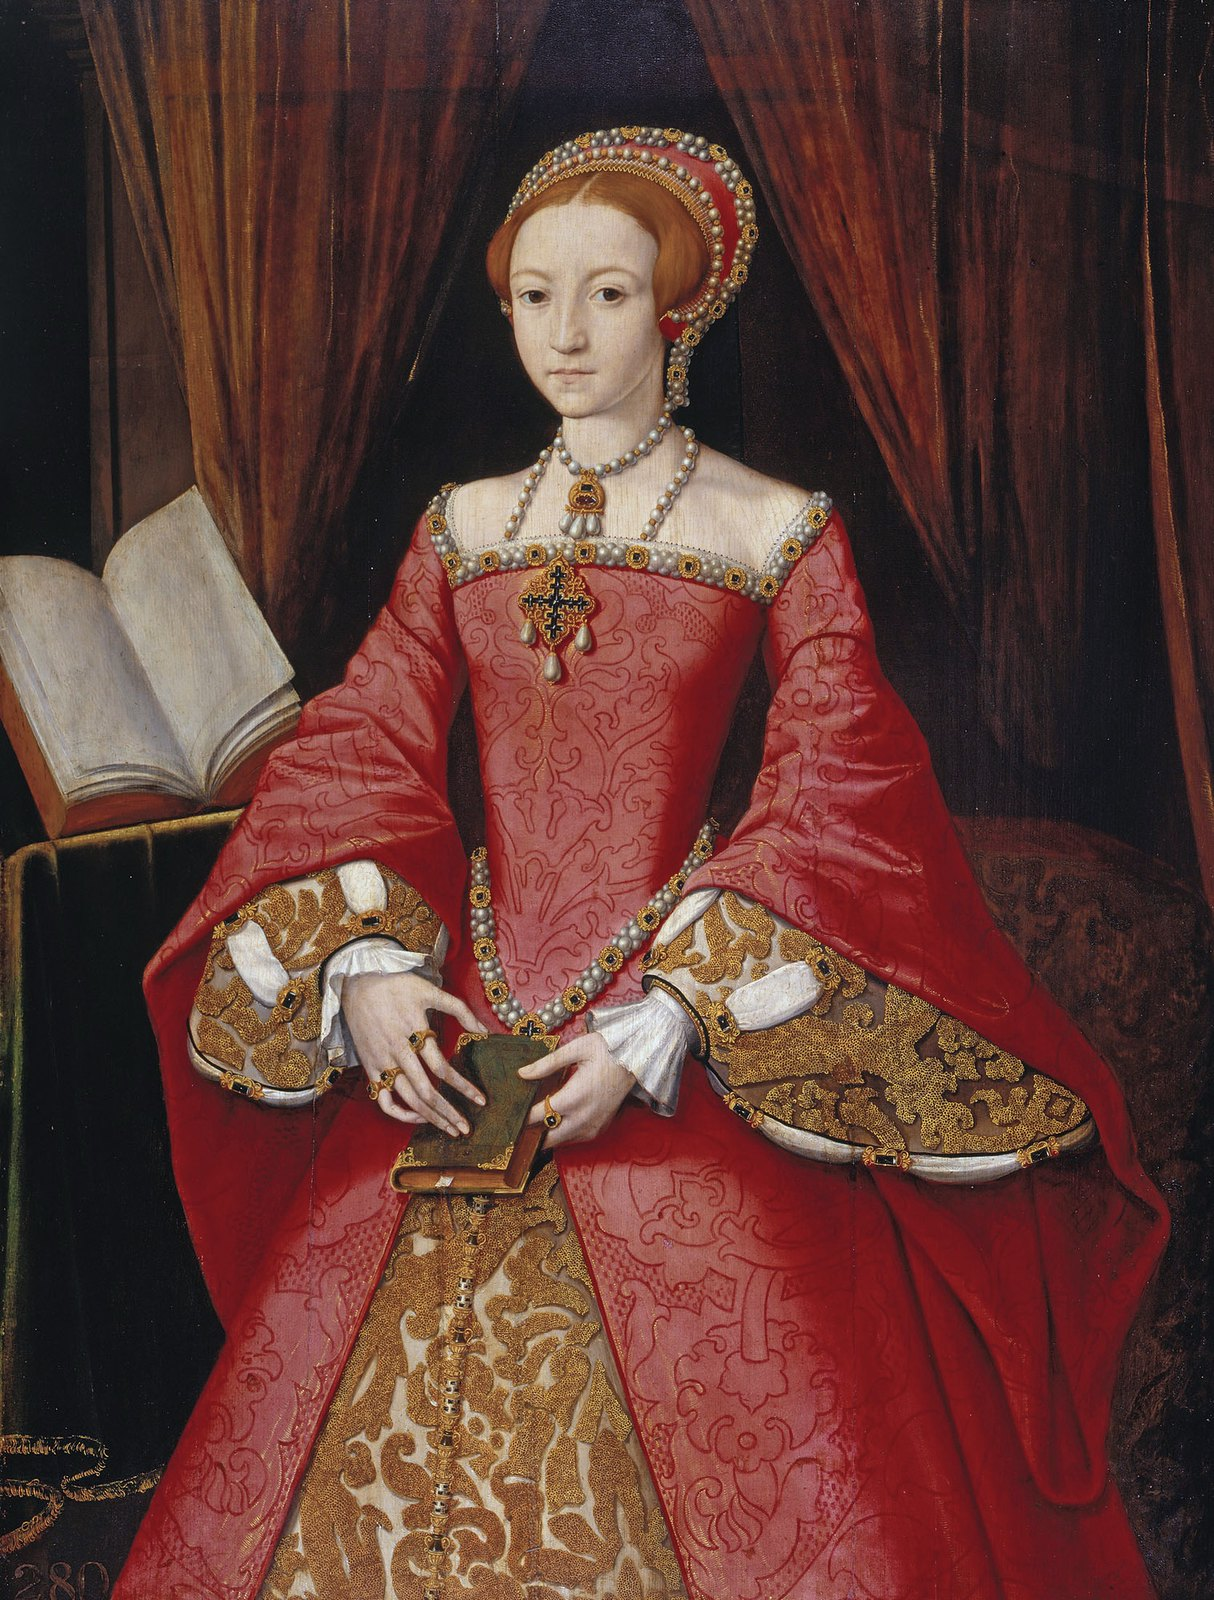 The Lady Elizabeth in about 1546, by an unknown artist.